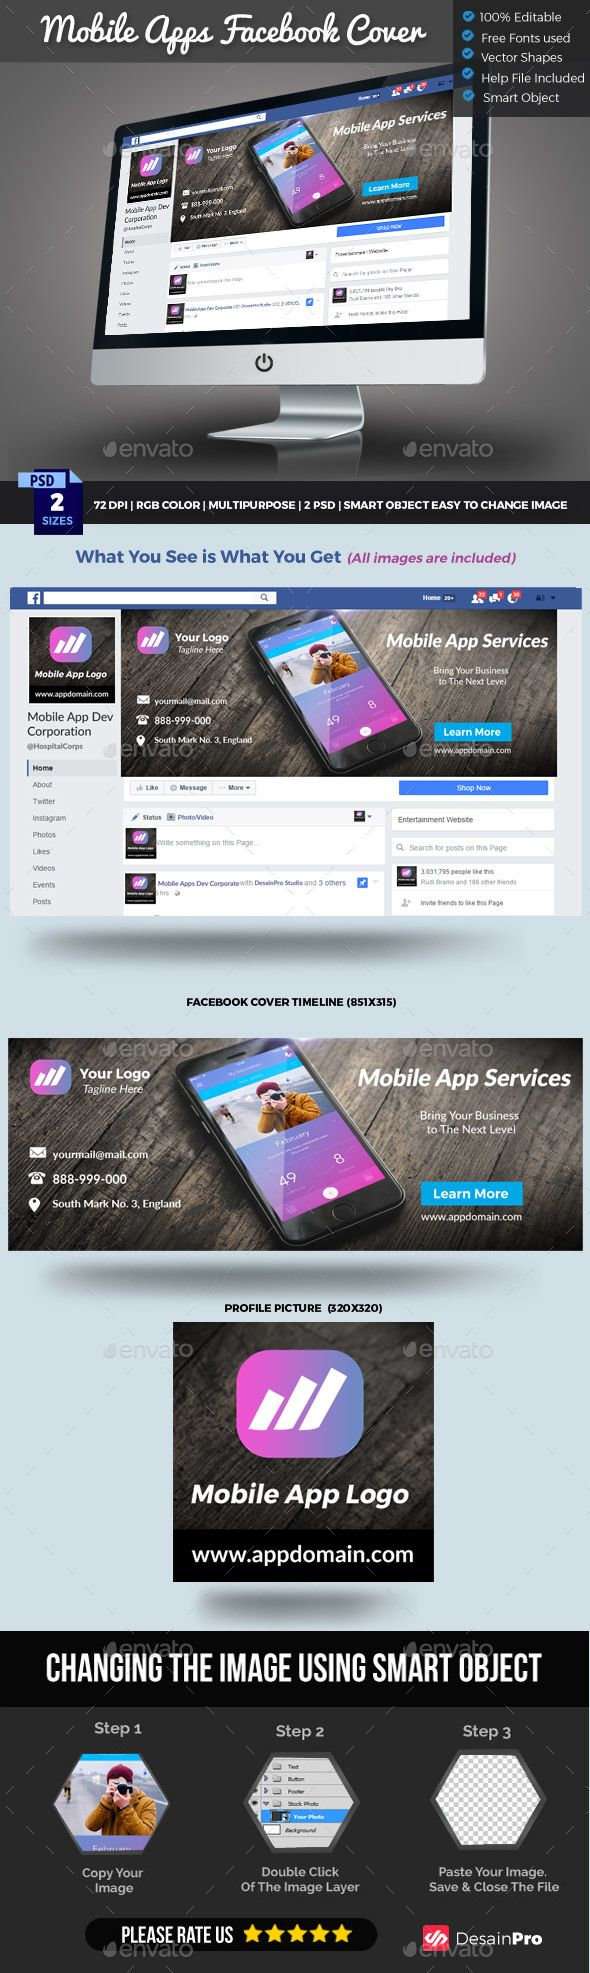 Mobile App Facebook Cover Timeline  Vector Shapes Timeline And